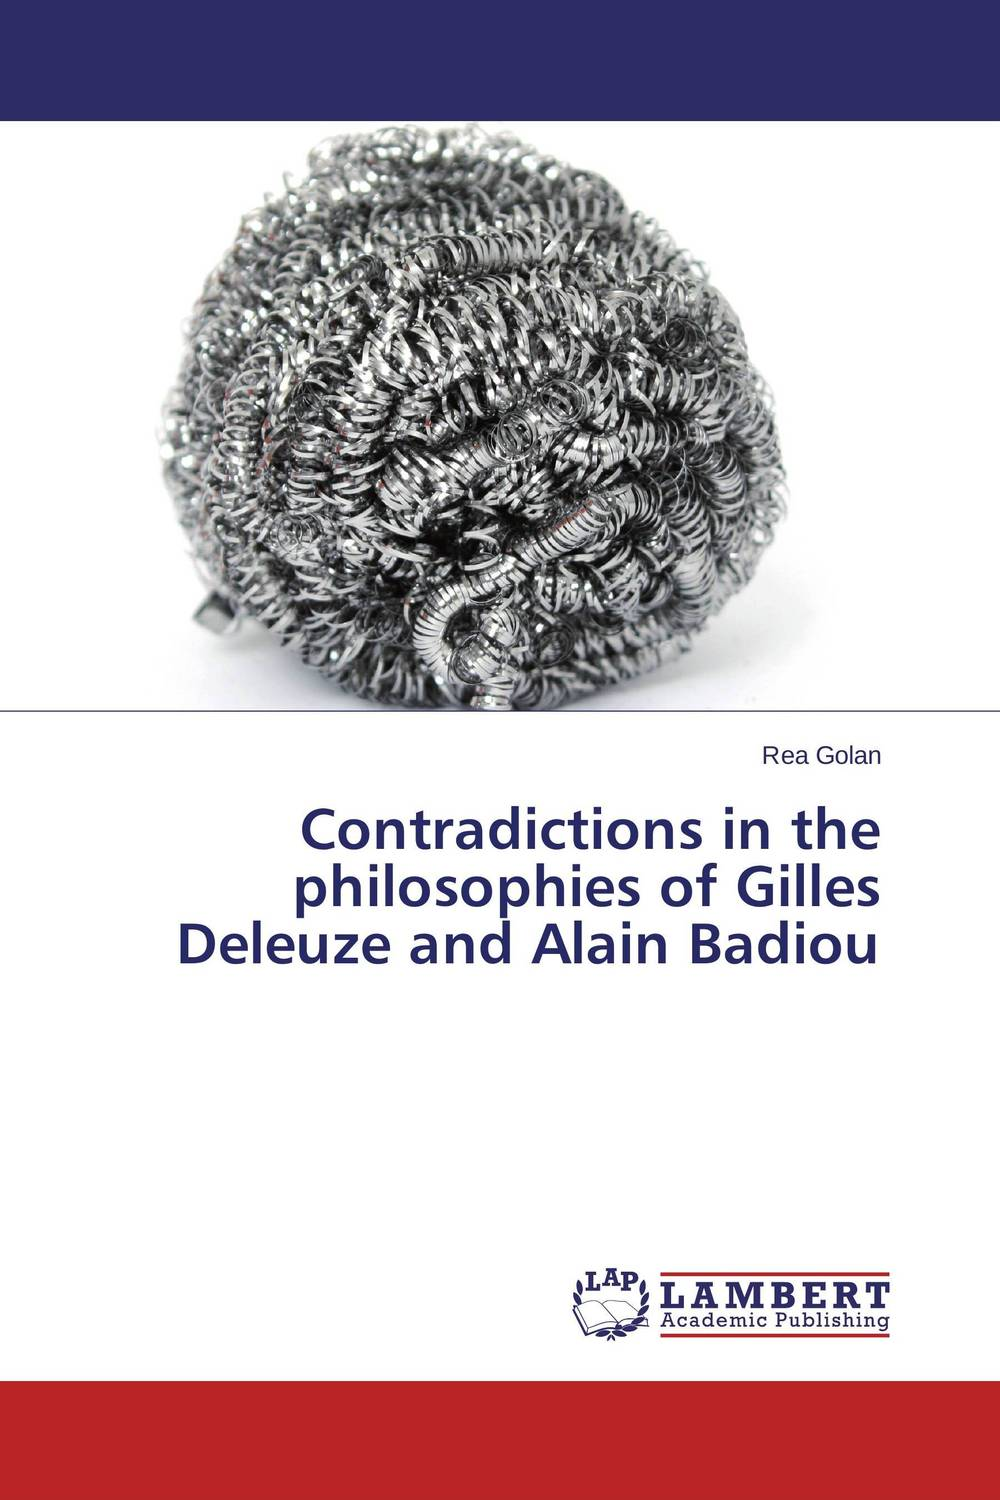 Contradictions in the philosophies of Gilles Deleuze and Alain Badiou aswath damodaran investment philosophies successful strategies and the investors who made them work